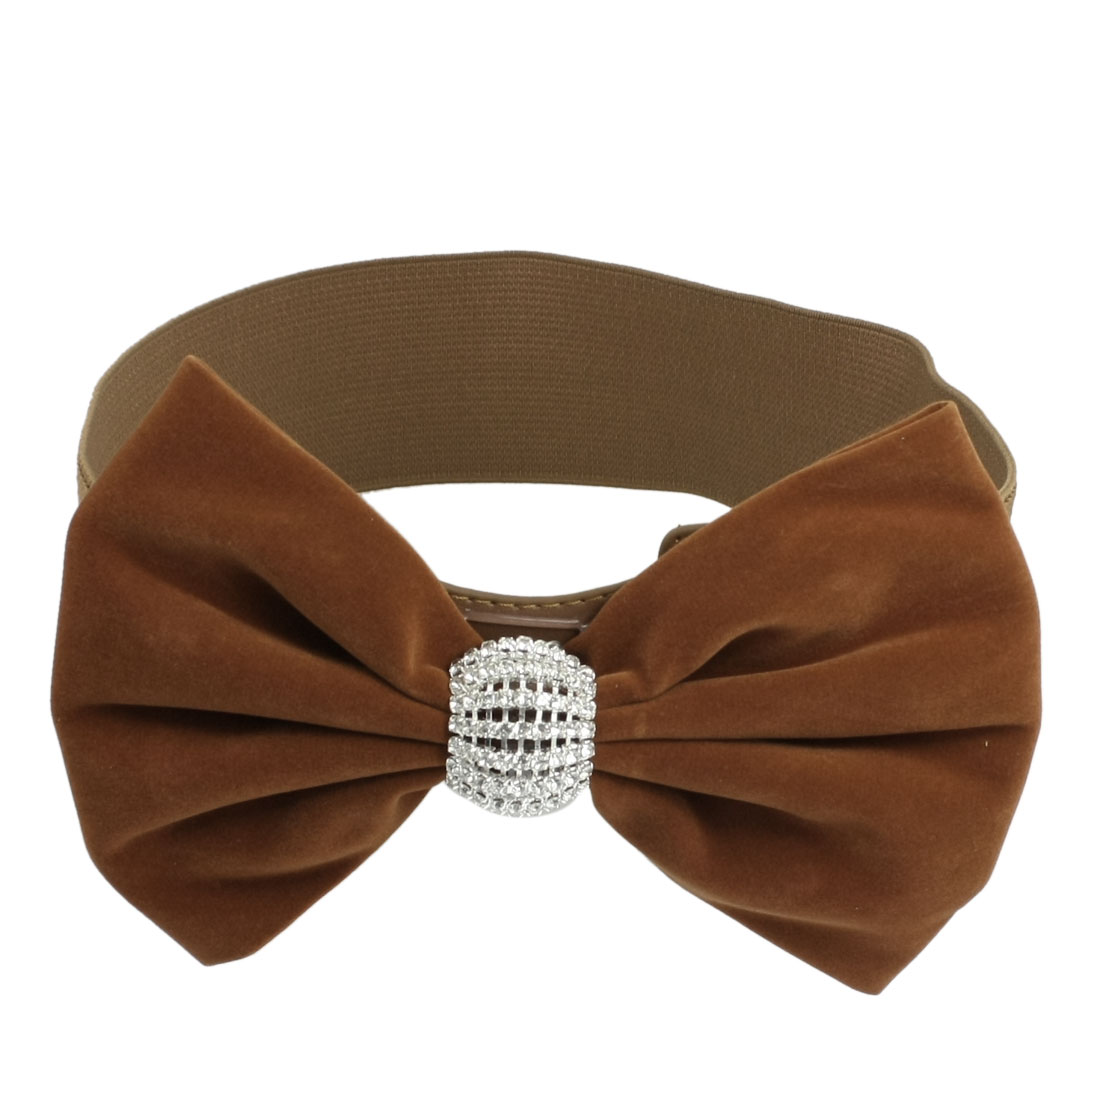 Rhinestone Decor Dark Brown Bowknot Press Buckle Elastic Waistband Belt for Women